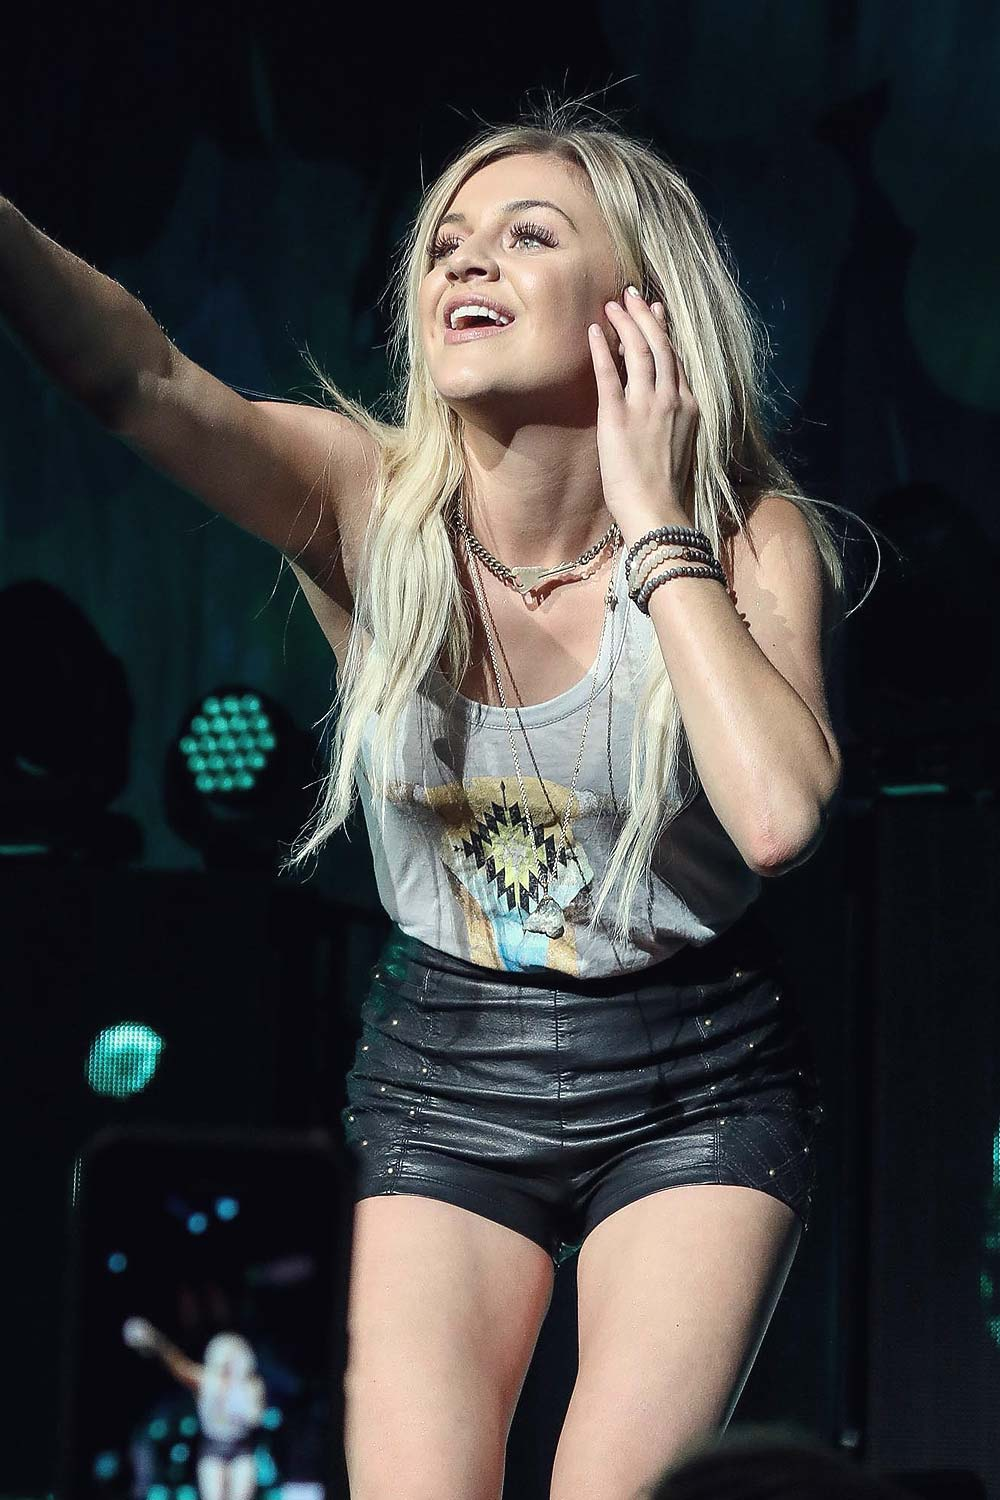 Kelsea Ballerini performs during the Rhythm and Roots Tour 2016